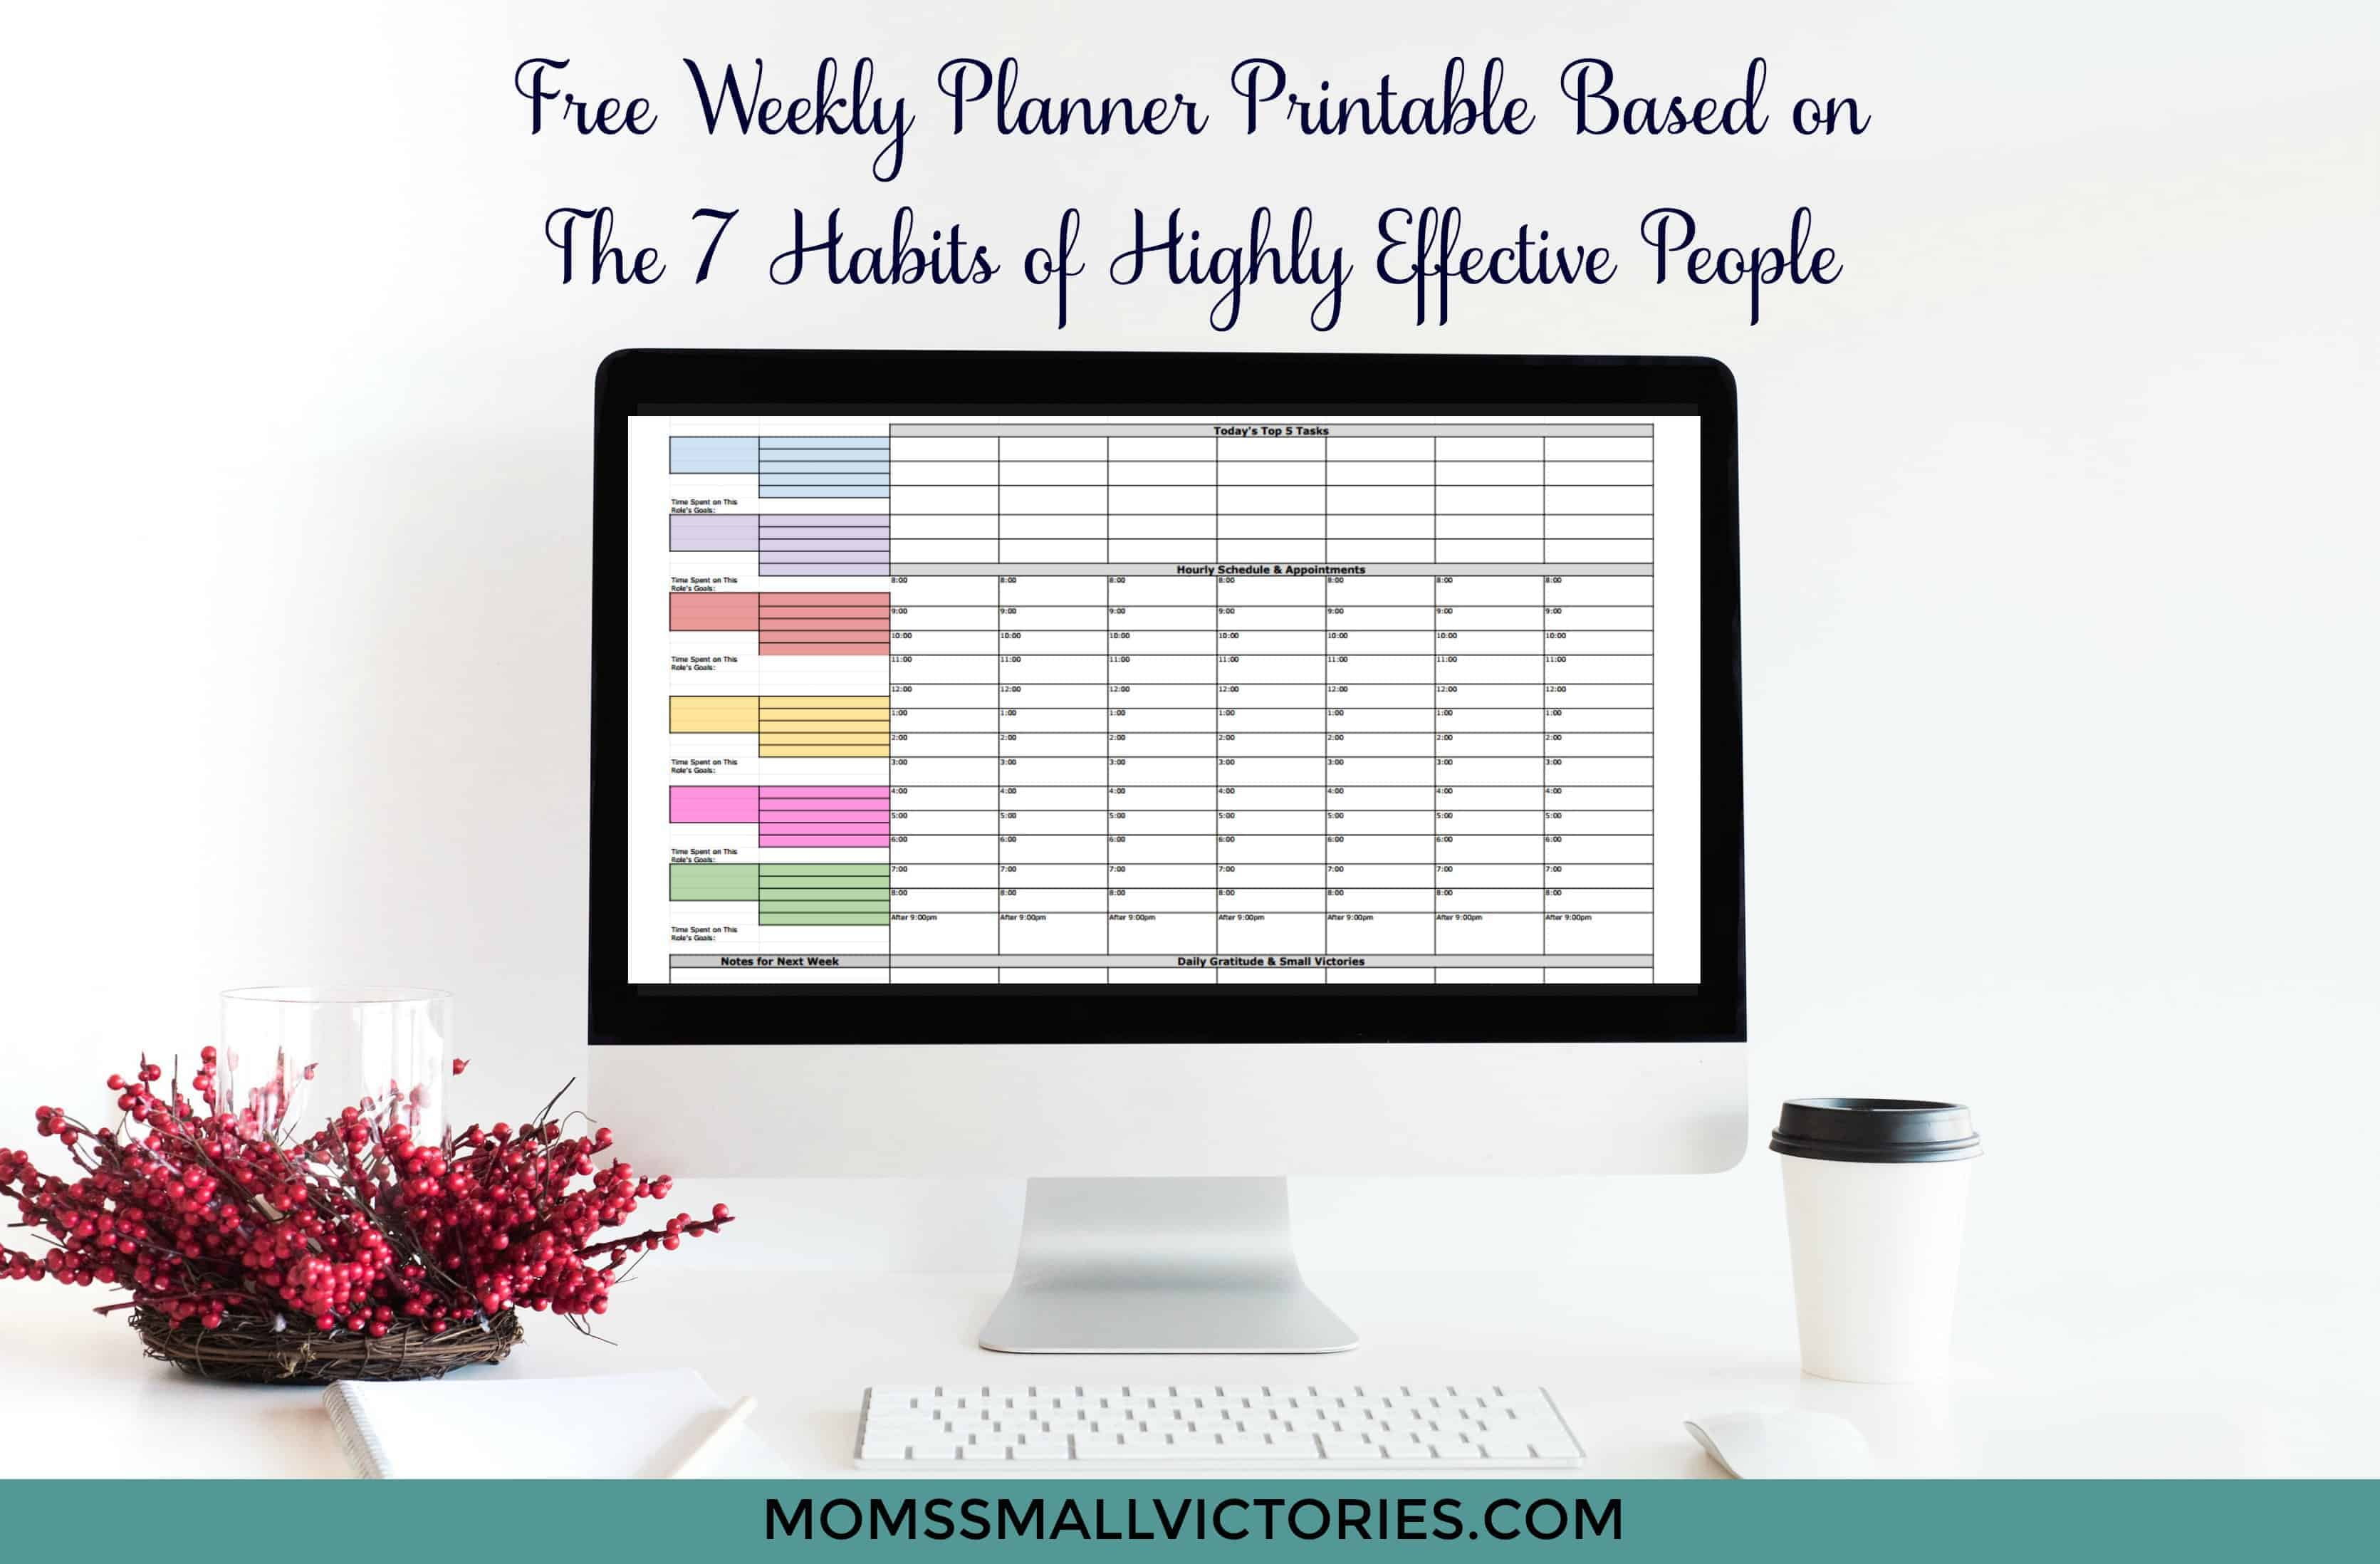 free weekly planner based on the 7 Habits of Highly Effective People